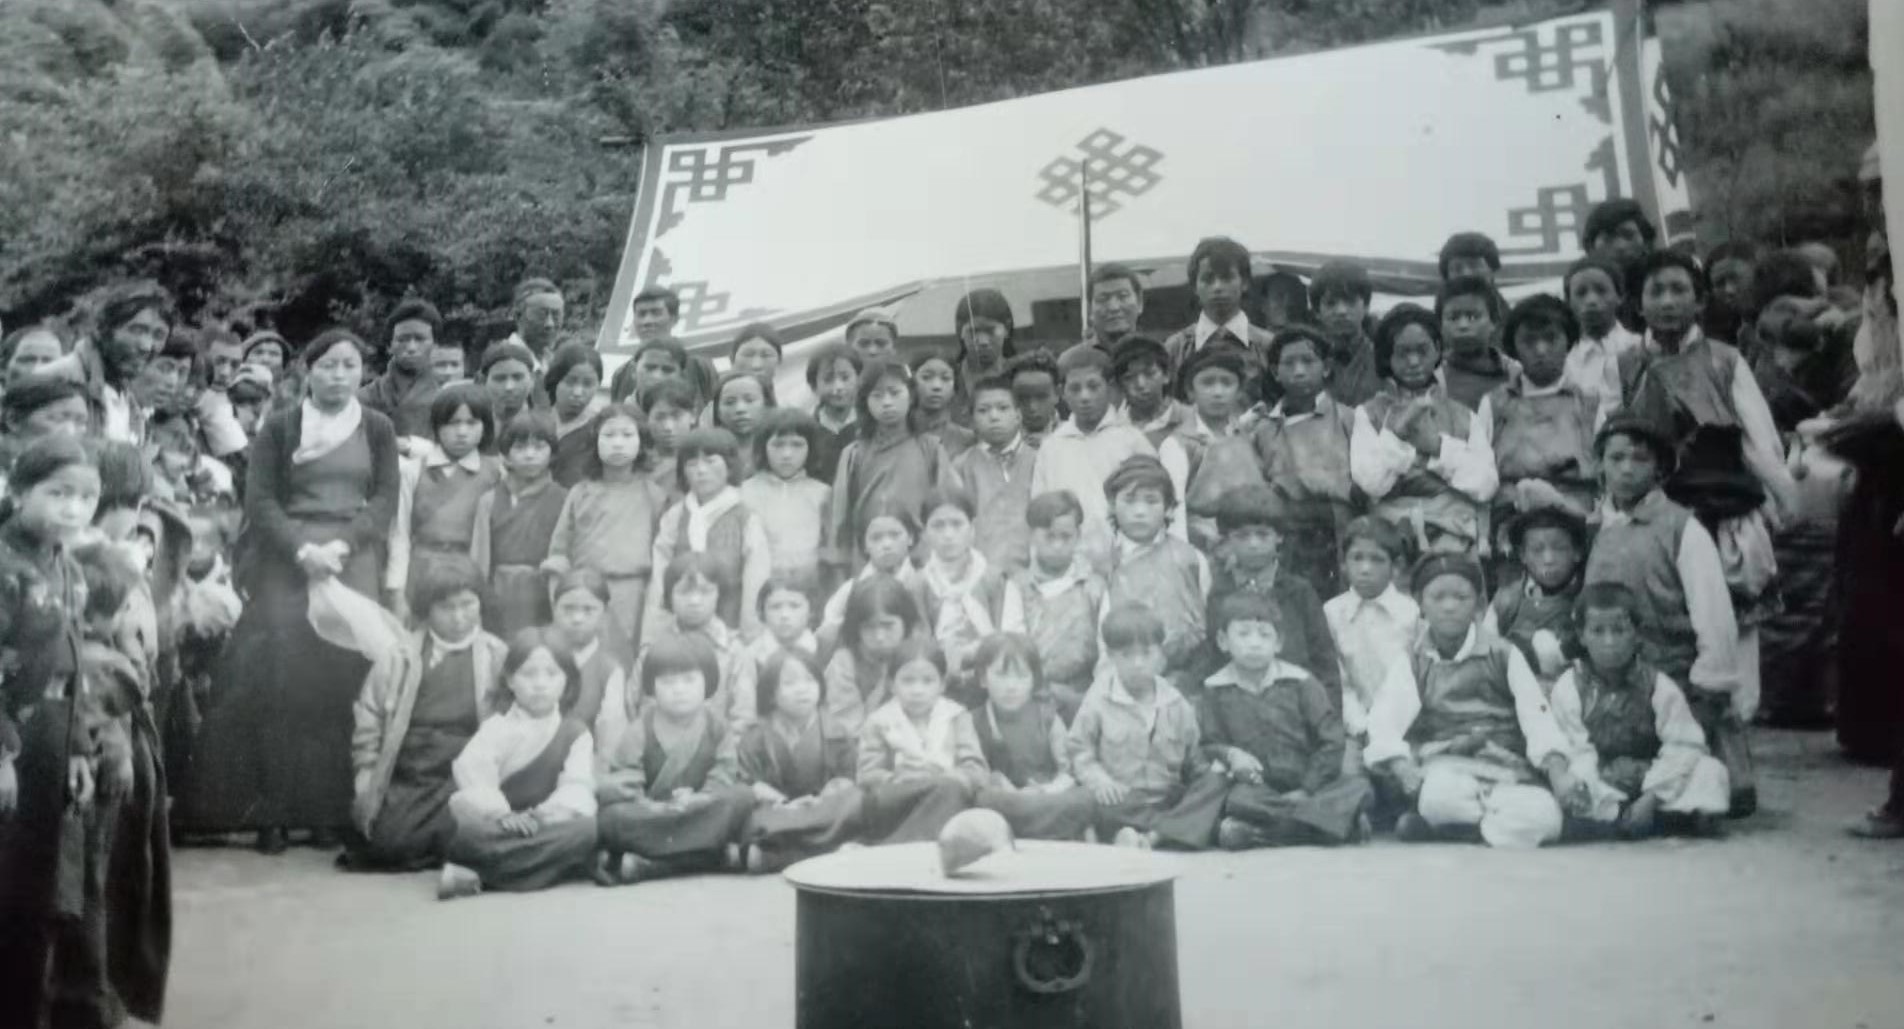 Mr. Dhondup Tsering's childhood picture seated front second row first from right.